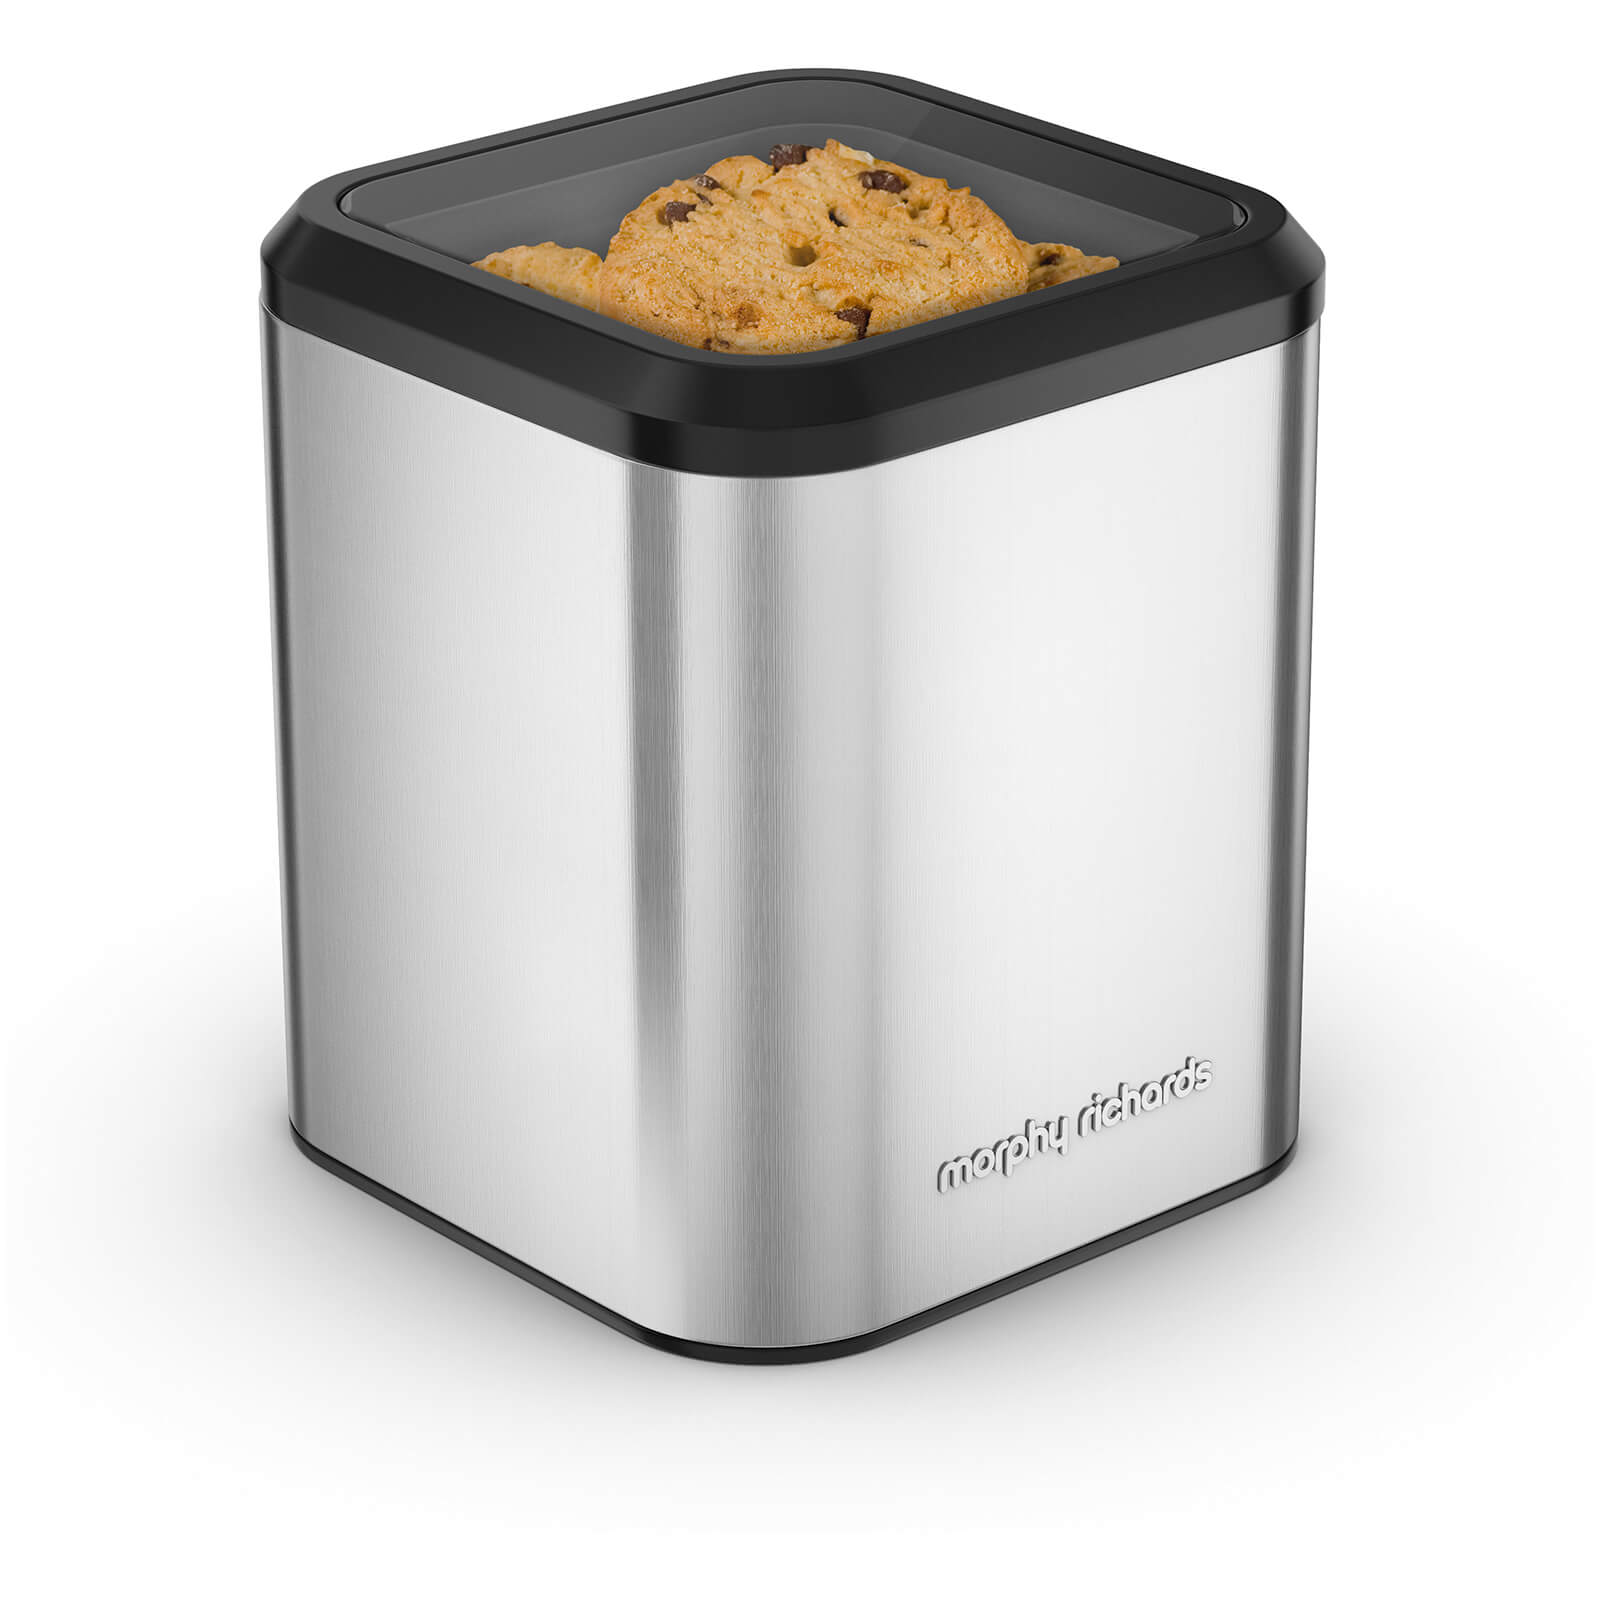 Morphy Richards 970253 Equip Biscuit Barrel - Stainless Steel